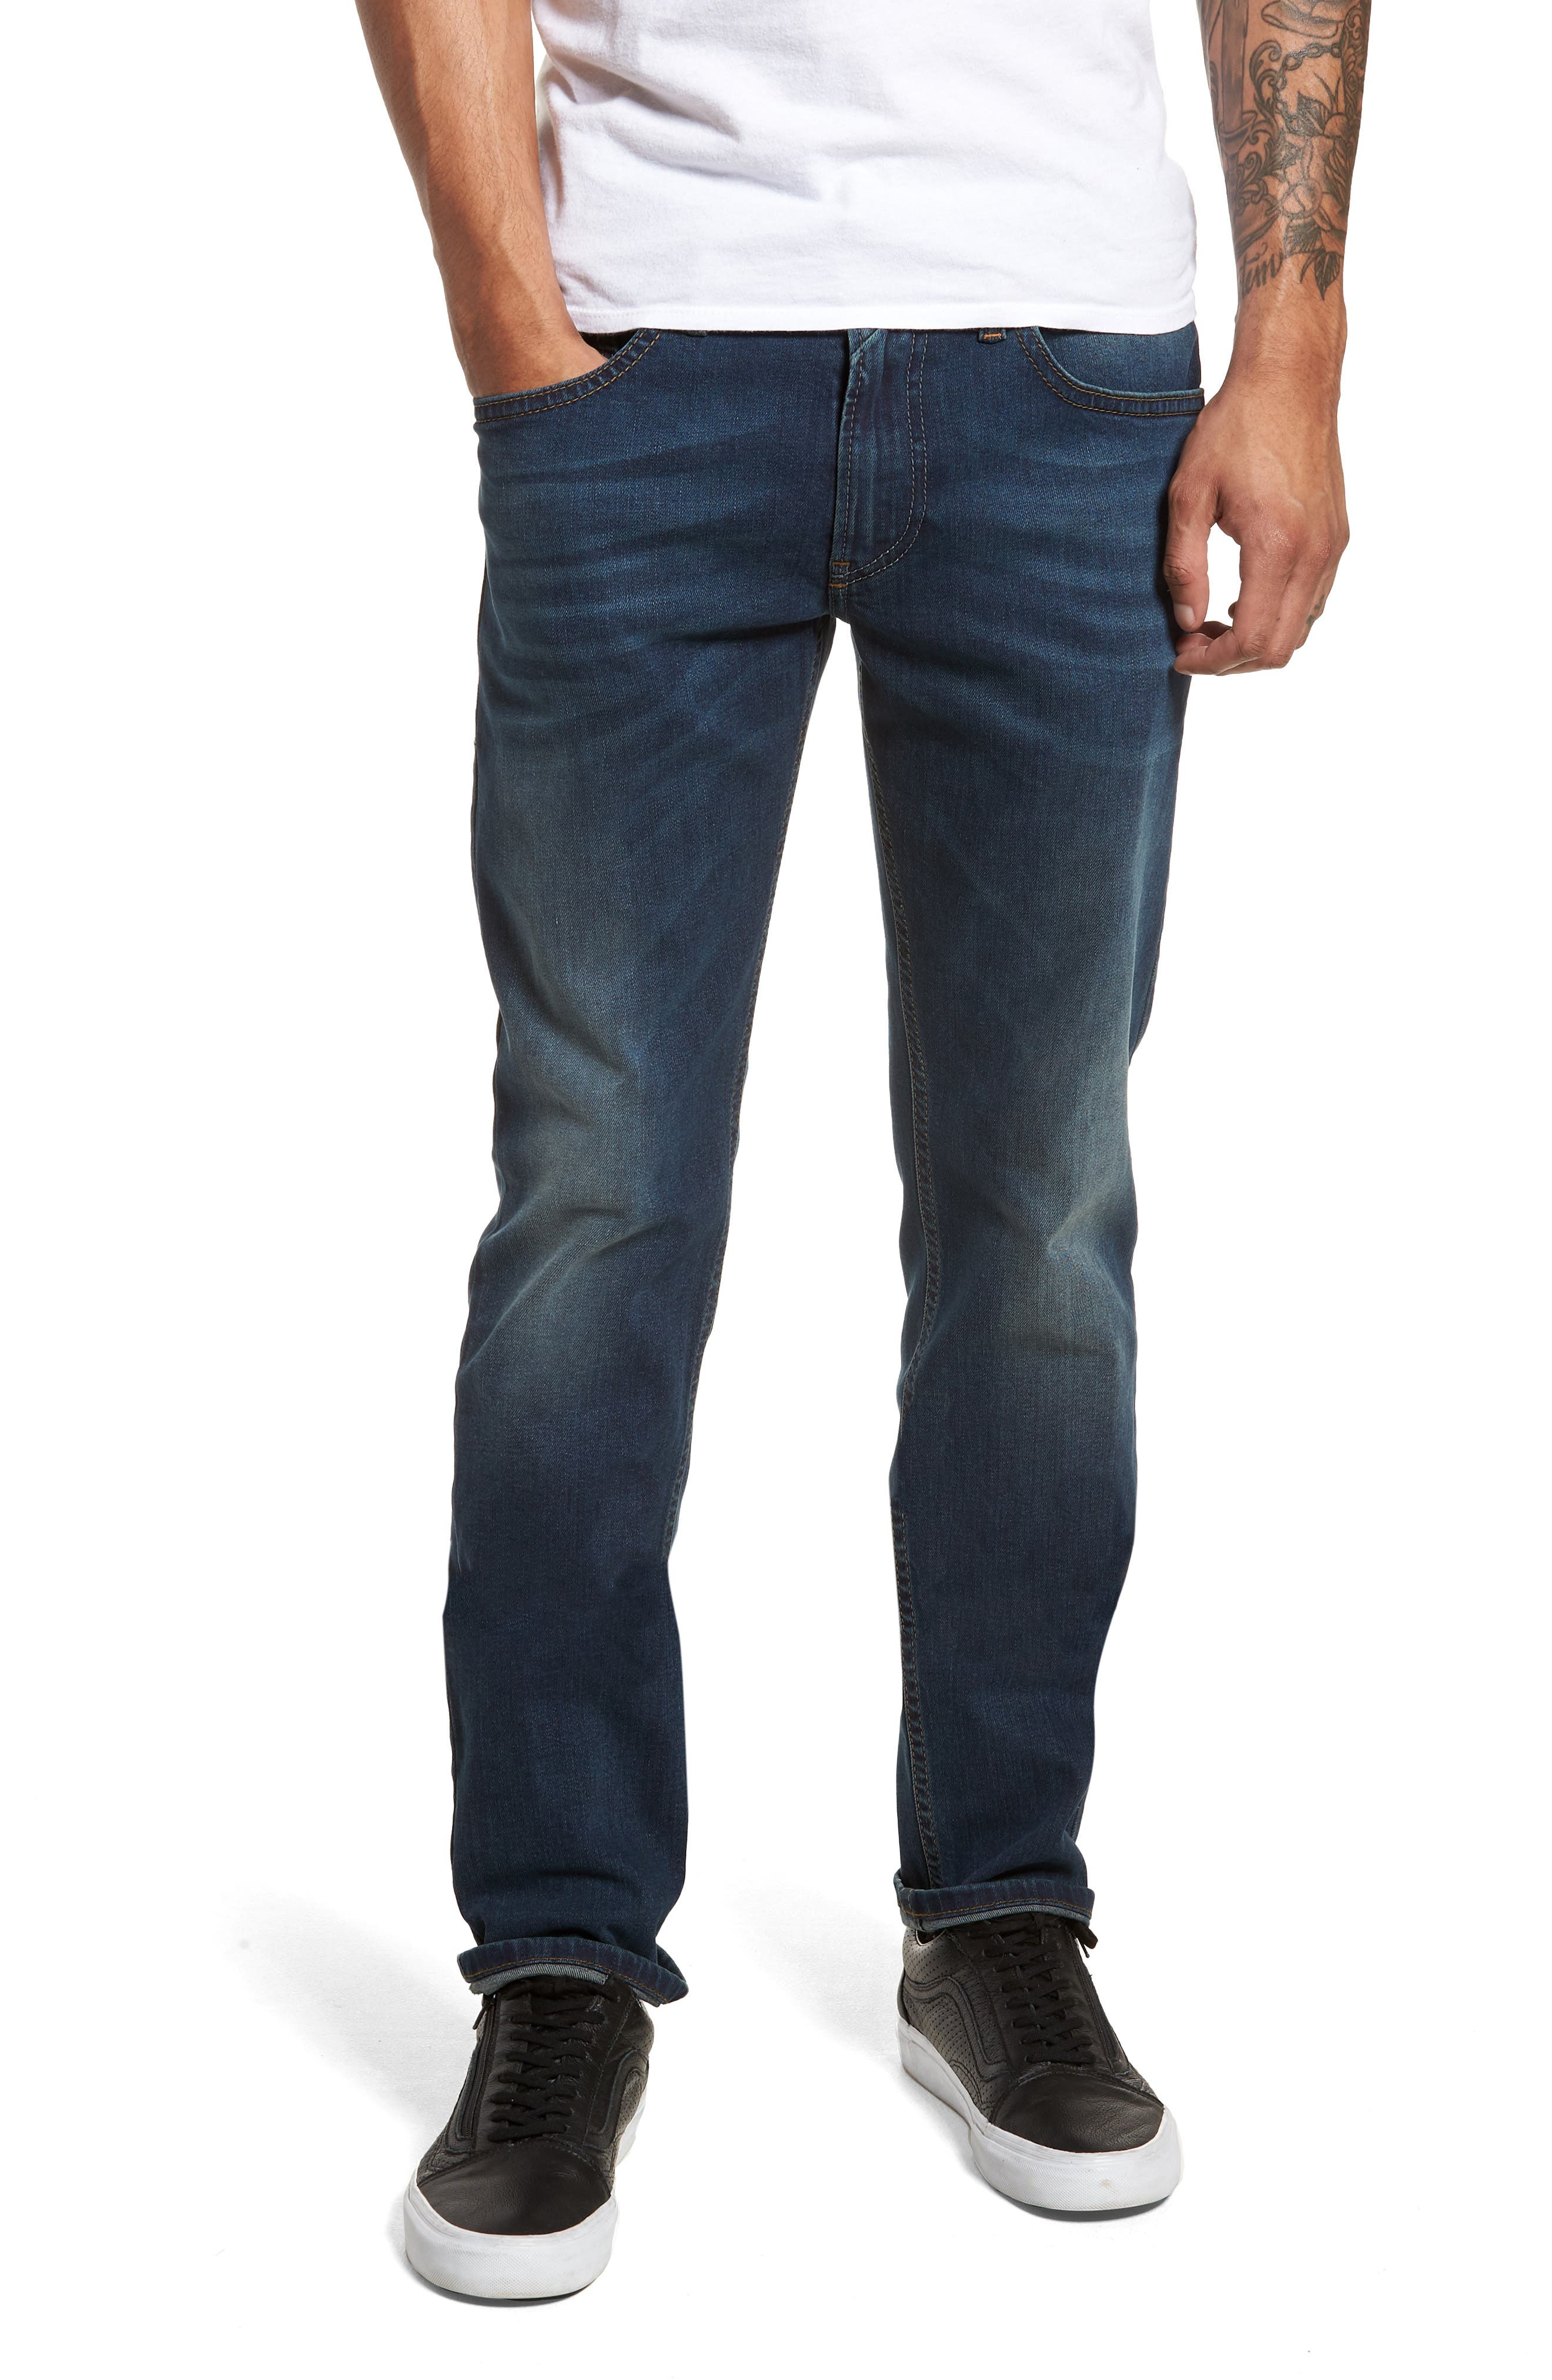 Thommer Skinny Fit Jeans,                             Main thumbnail 1, color,                             Blue